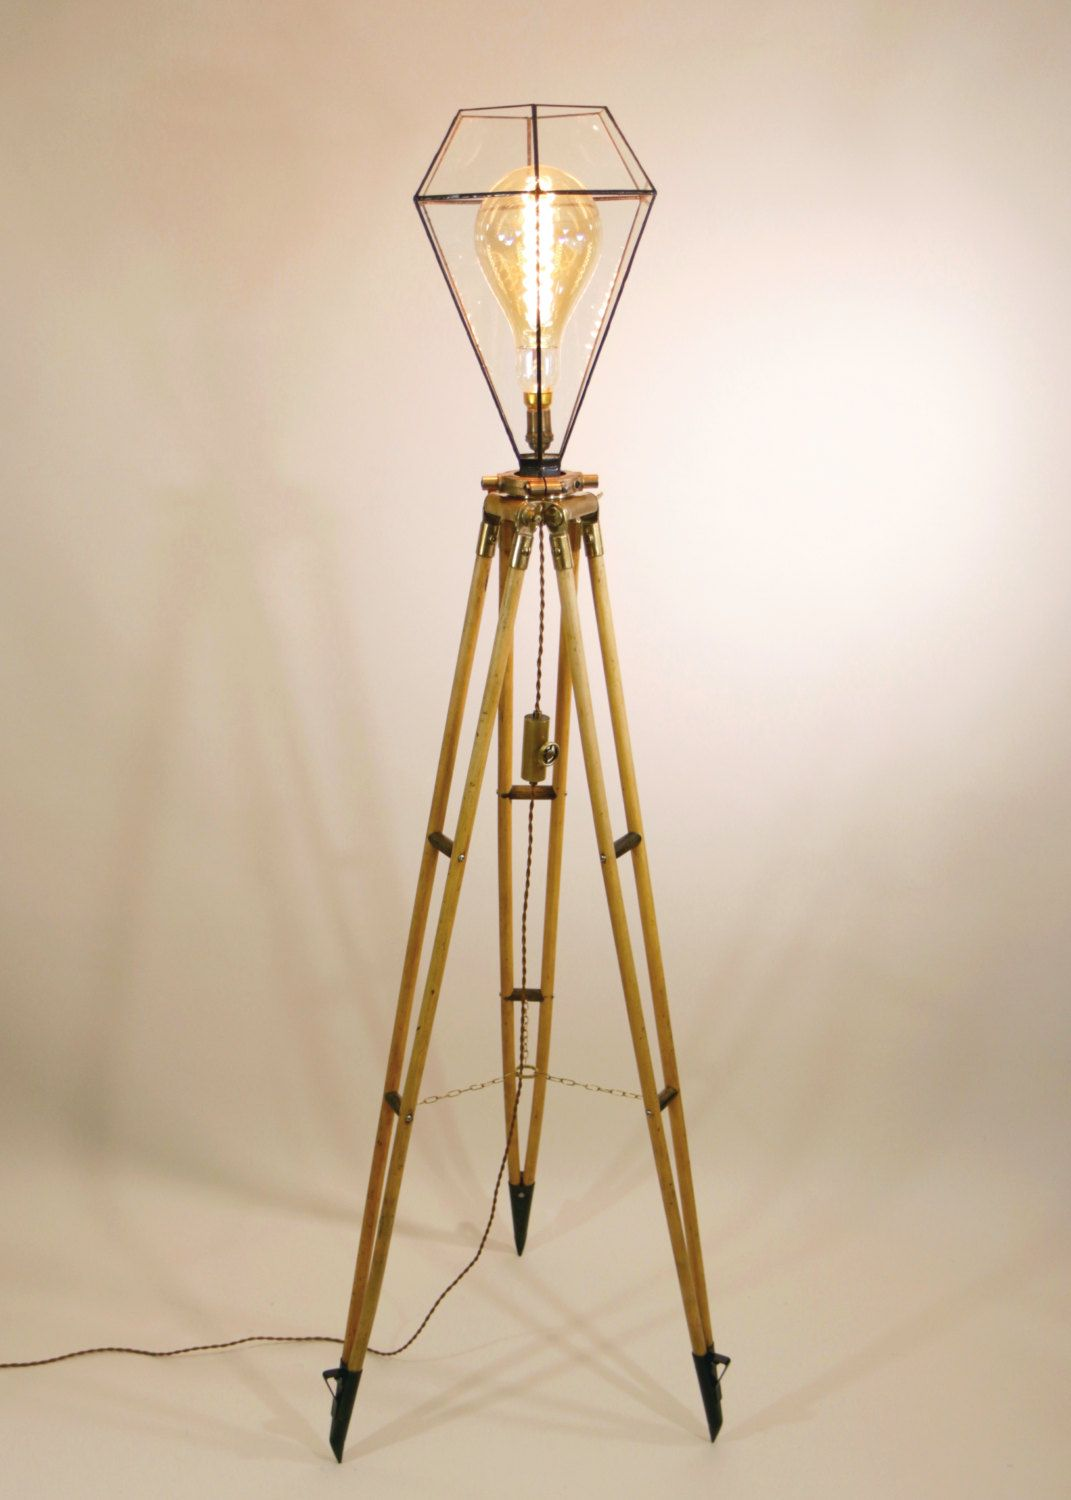 Vintage surveyor39s tripod floor lamp surveying stand lamp for Oak floor lamp stand